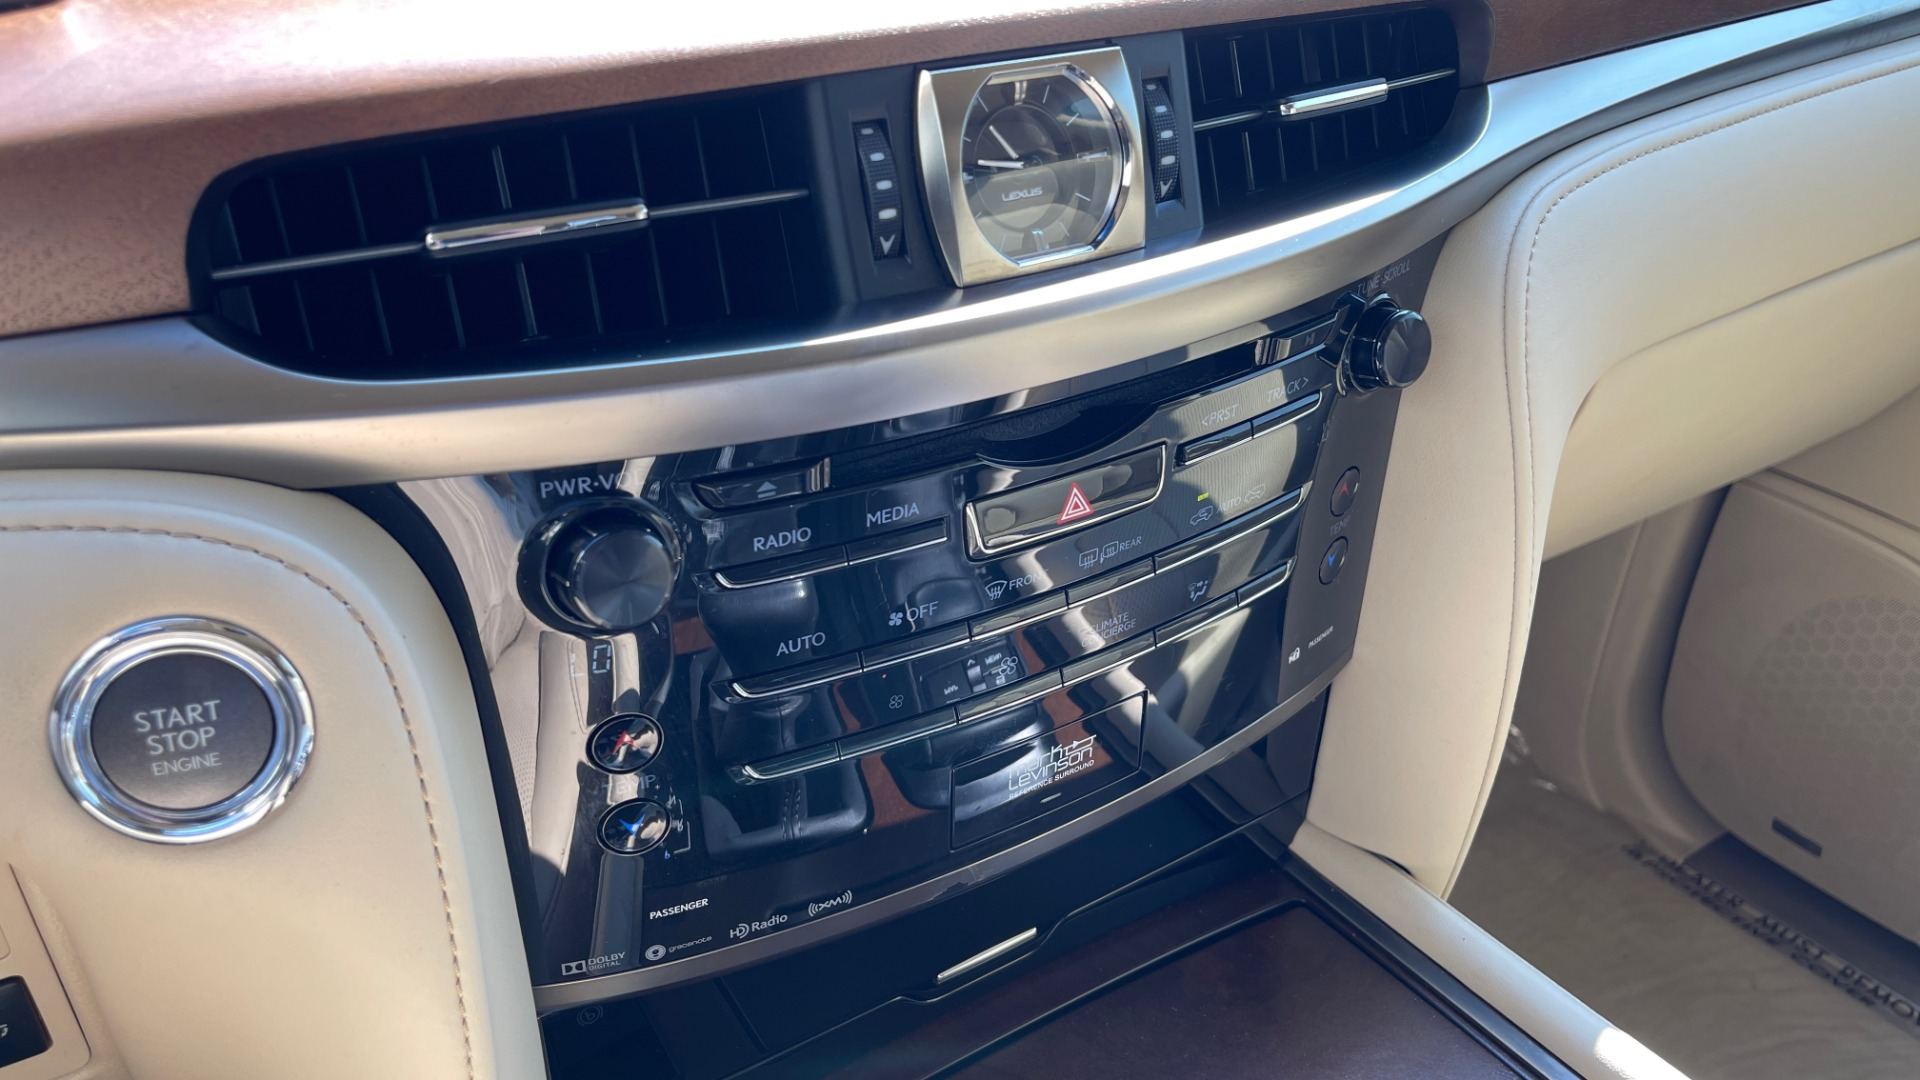 Used 2017 Lexus LX 570 LUXURY / 5.7L V8 / NAV / SUNROOF / 3-ROW / DVD / REARVIEW for sale $63,995 at Formula Imports in Charlotte NC 28227 40